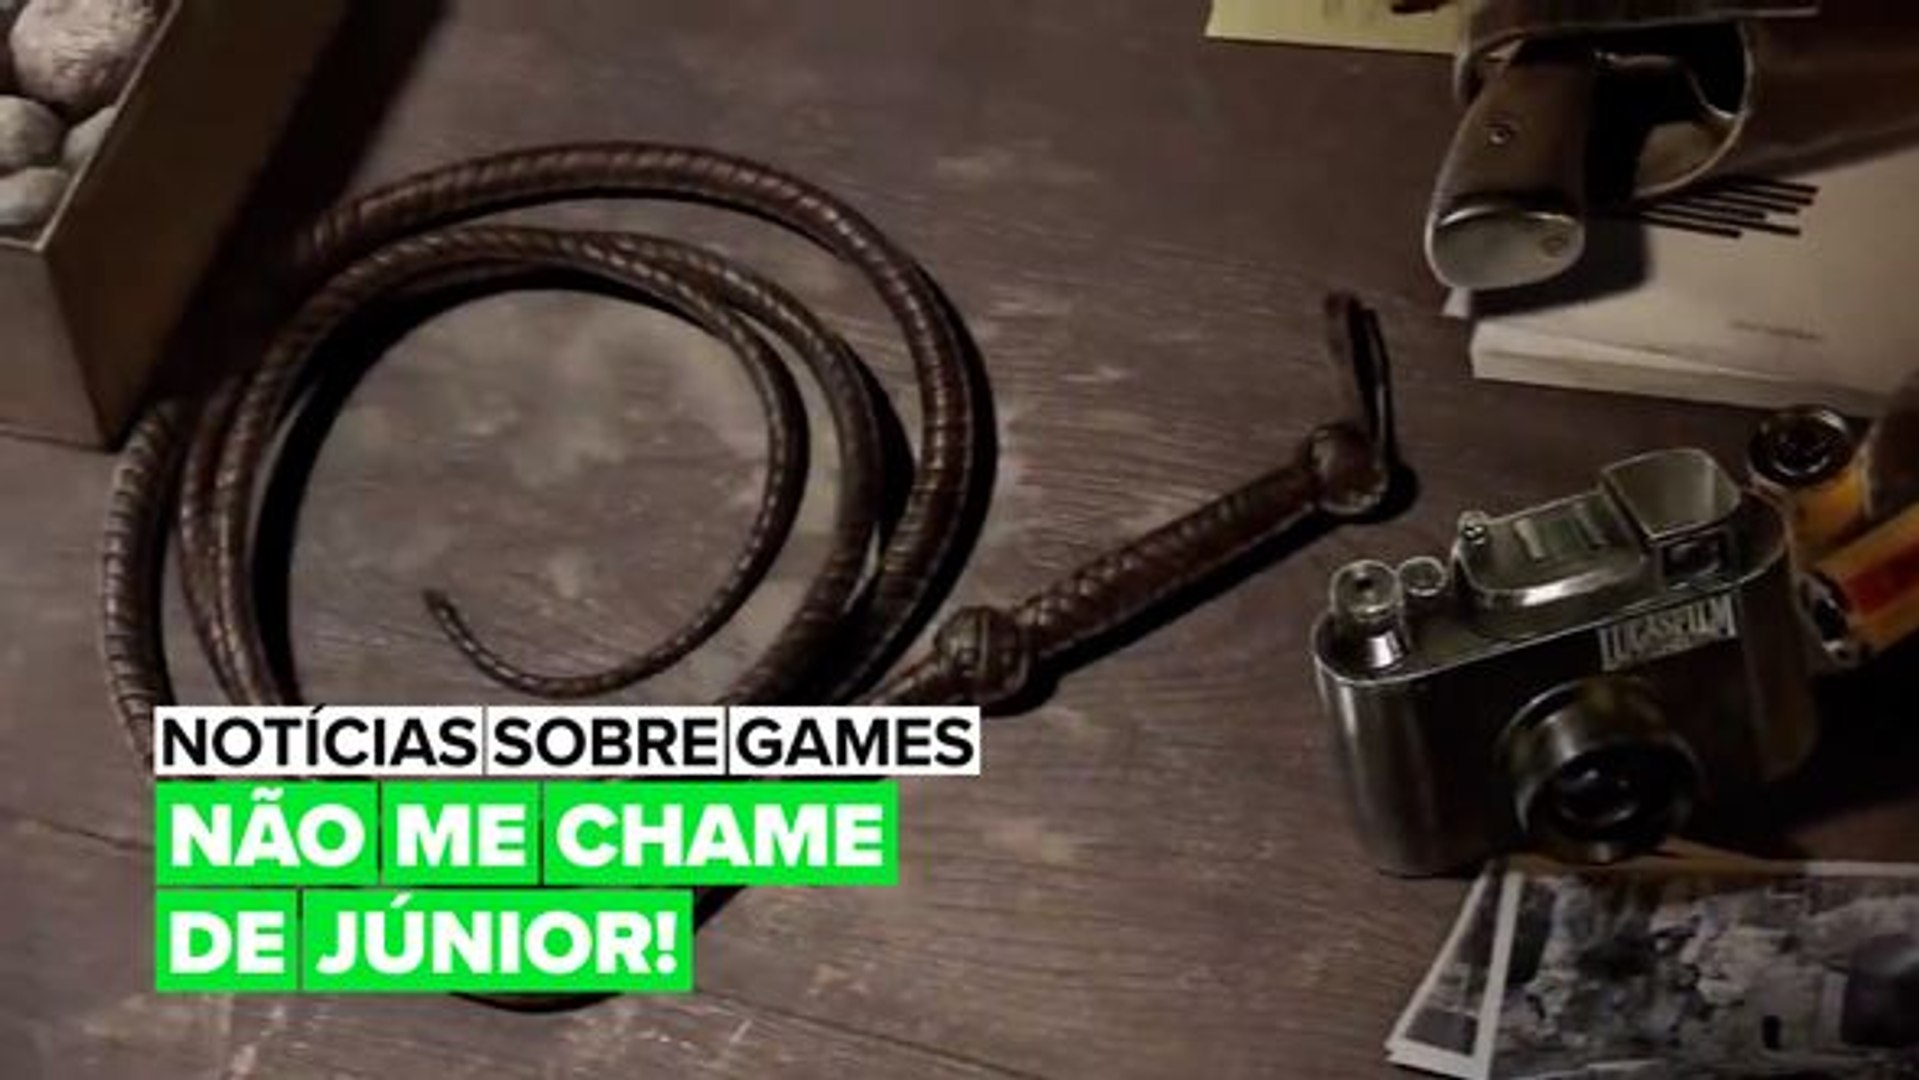 A Bethesda anuncia de surpresa um novo game de Indiana Jones